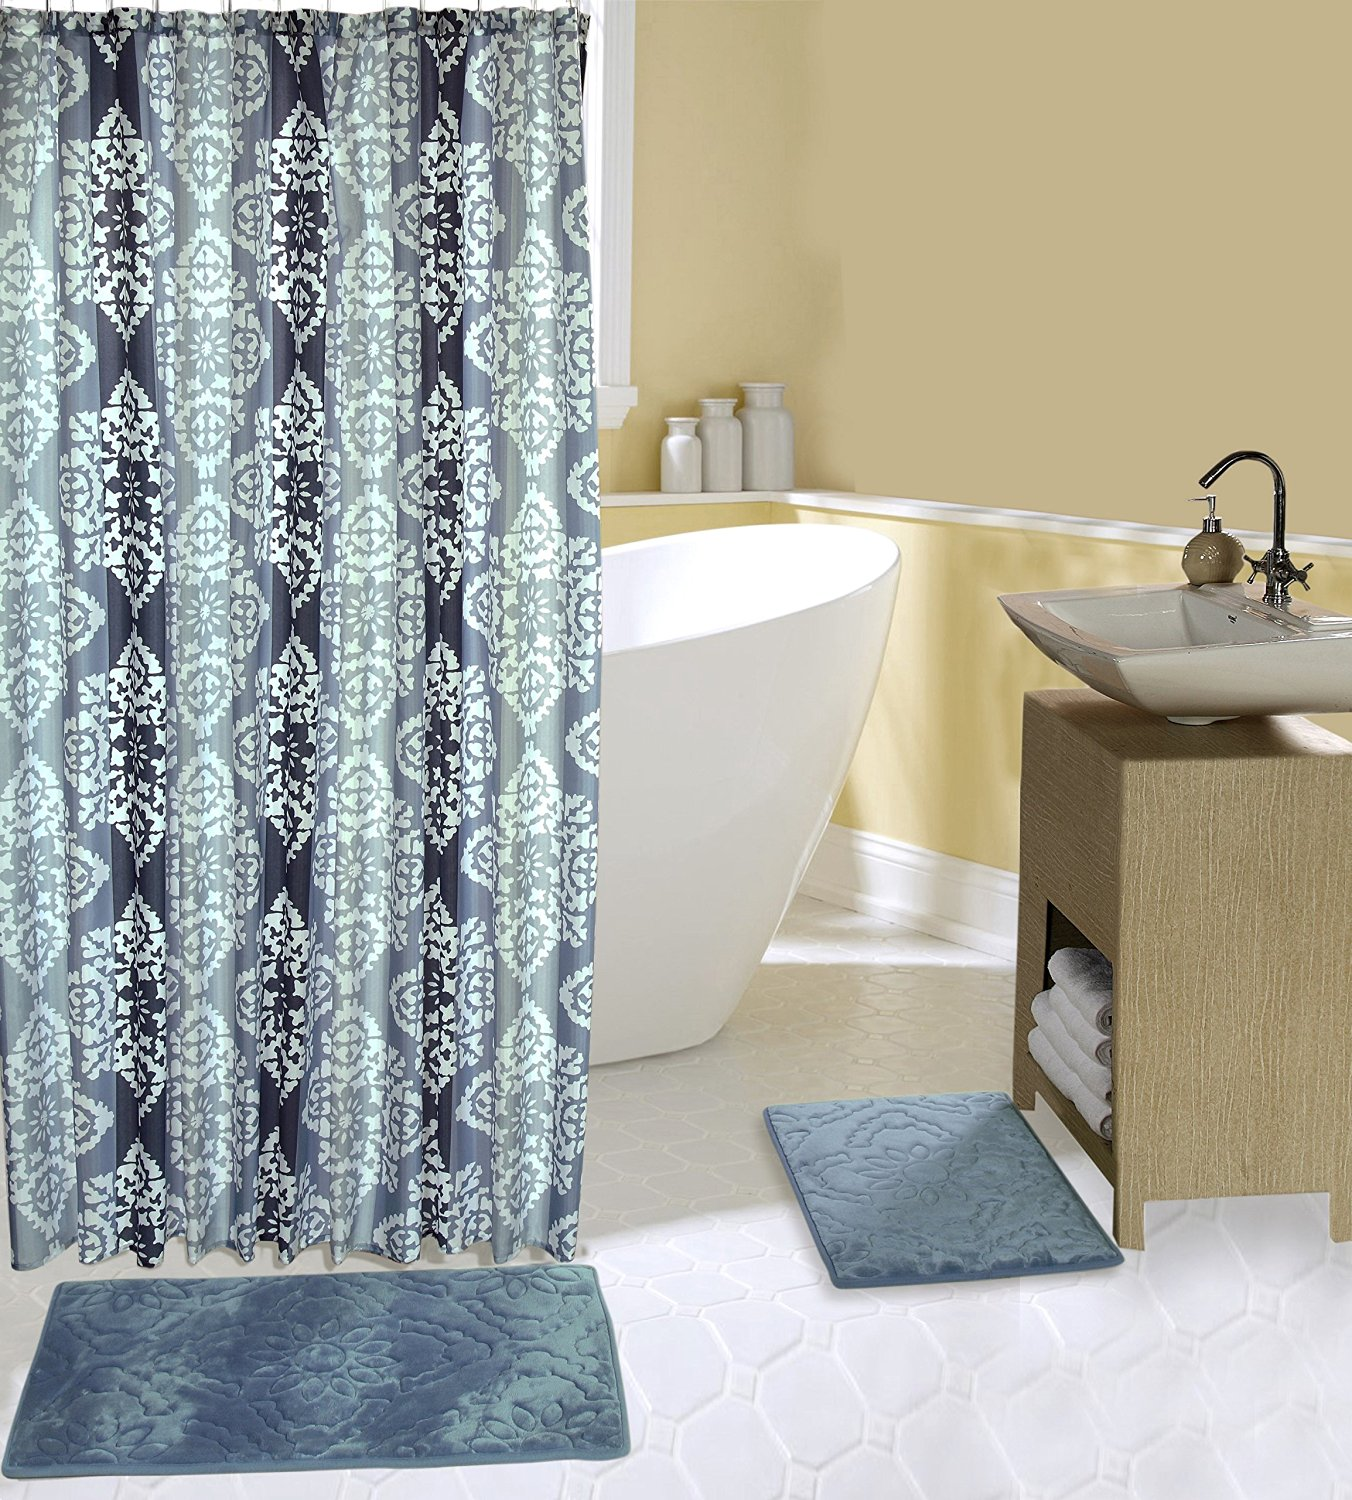 Get Quotations Complete 15 Piece Bath Set With 2 Memory Foam Mats Shower Curtain And Hooks